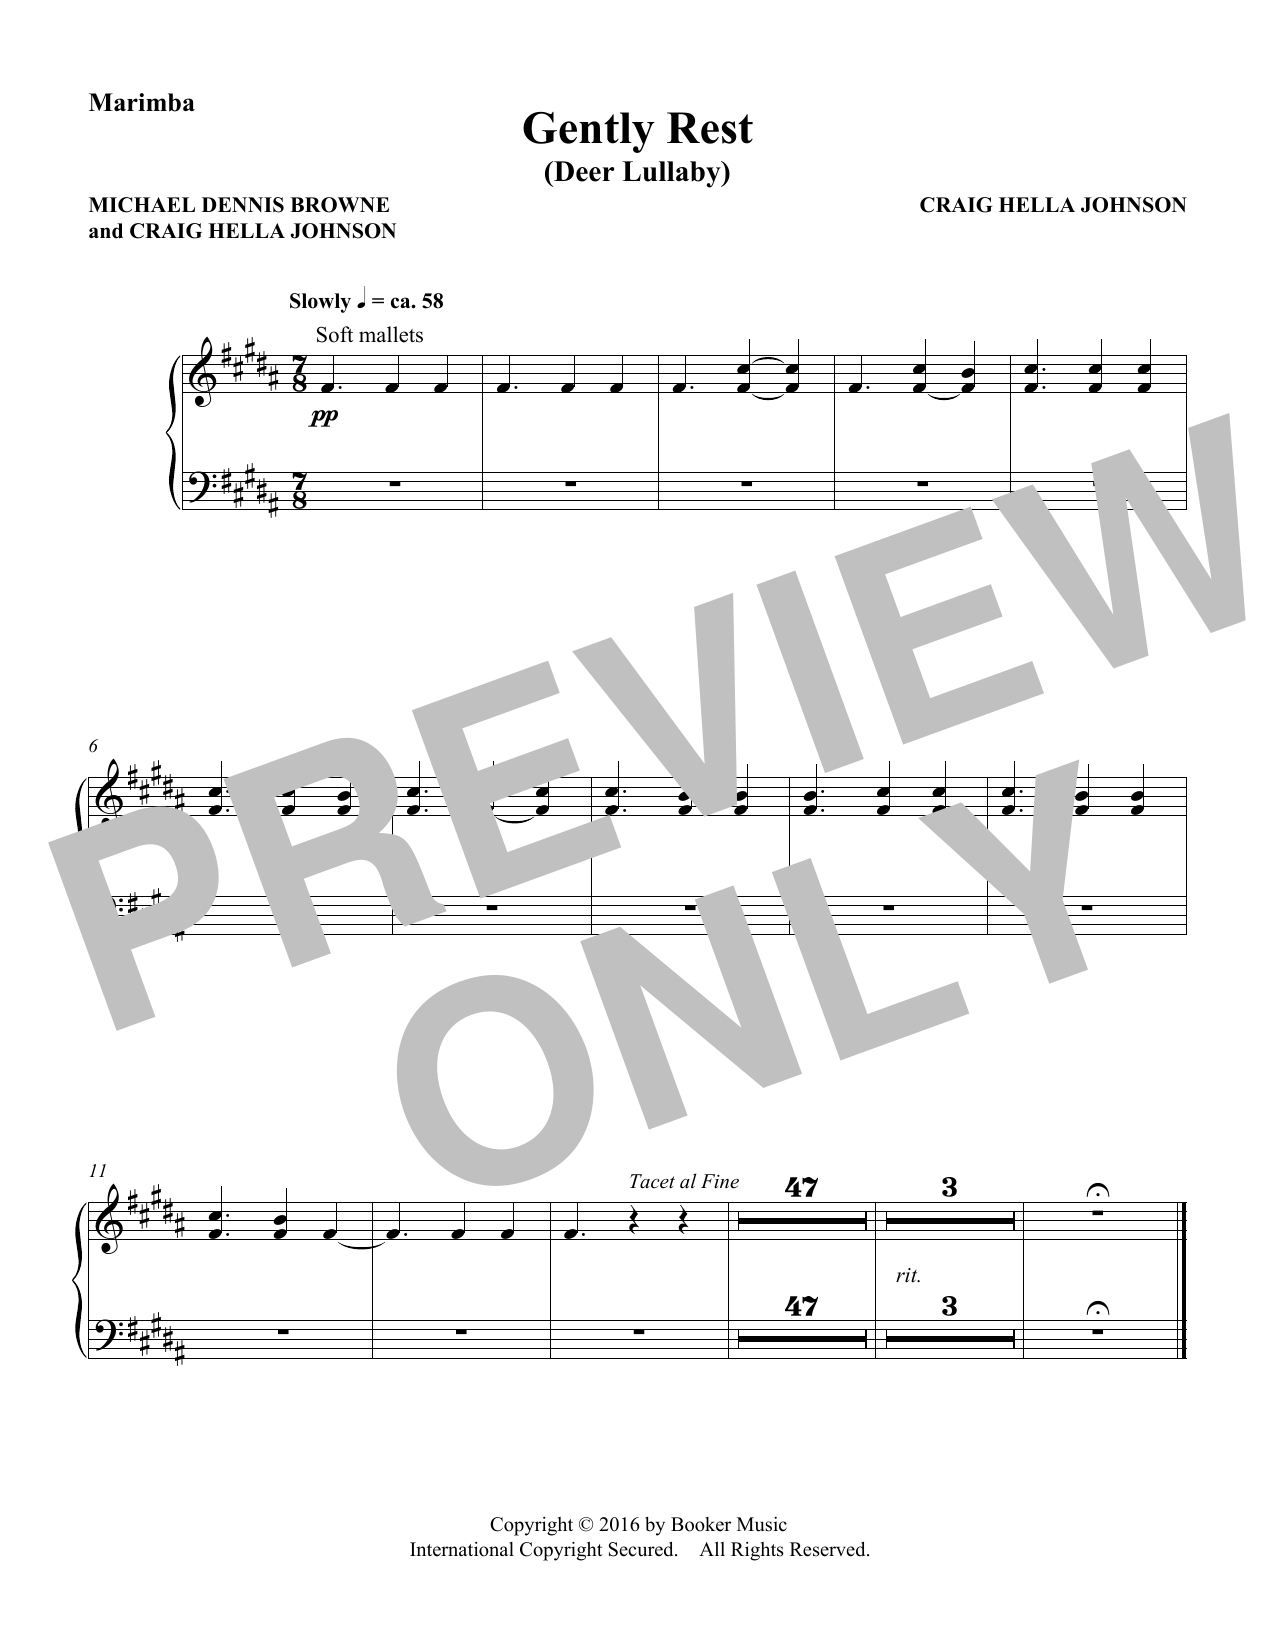 Michael Dennis Browne & Craig Hella Johnson Gently Rest (Deer Lullaby) (from Considering Matthew Shepard) - Marimba sheet music preview music notes and score for Choir Instrumental Pak including 1 page(s)